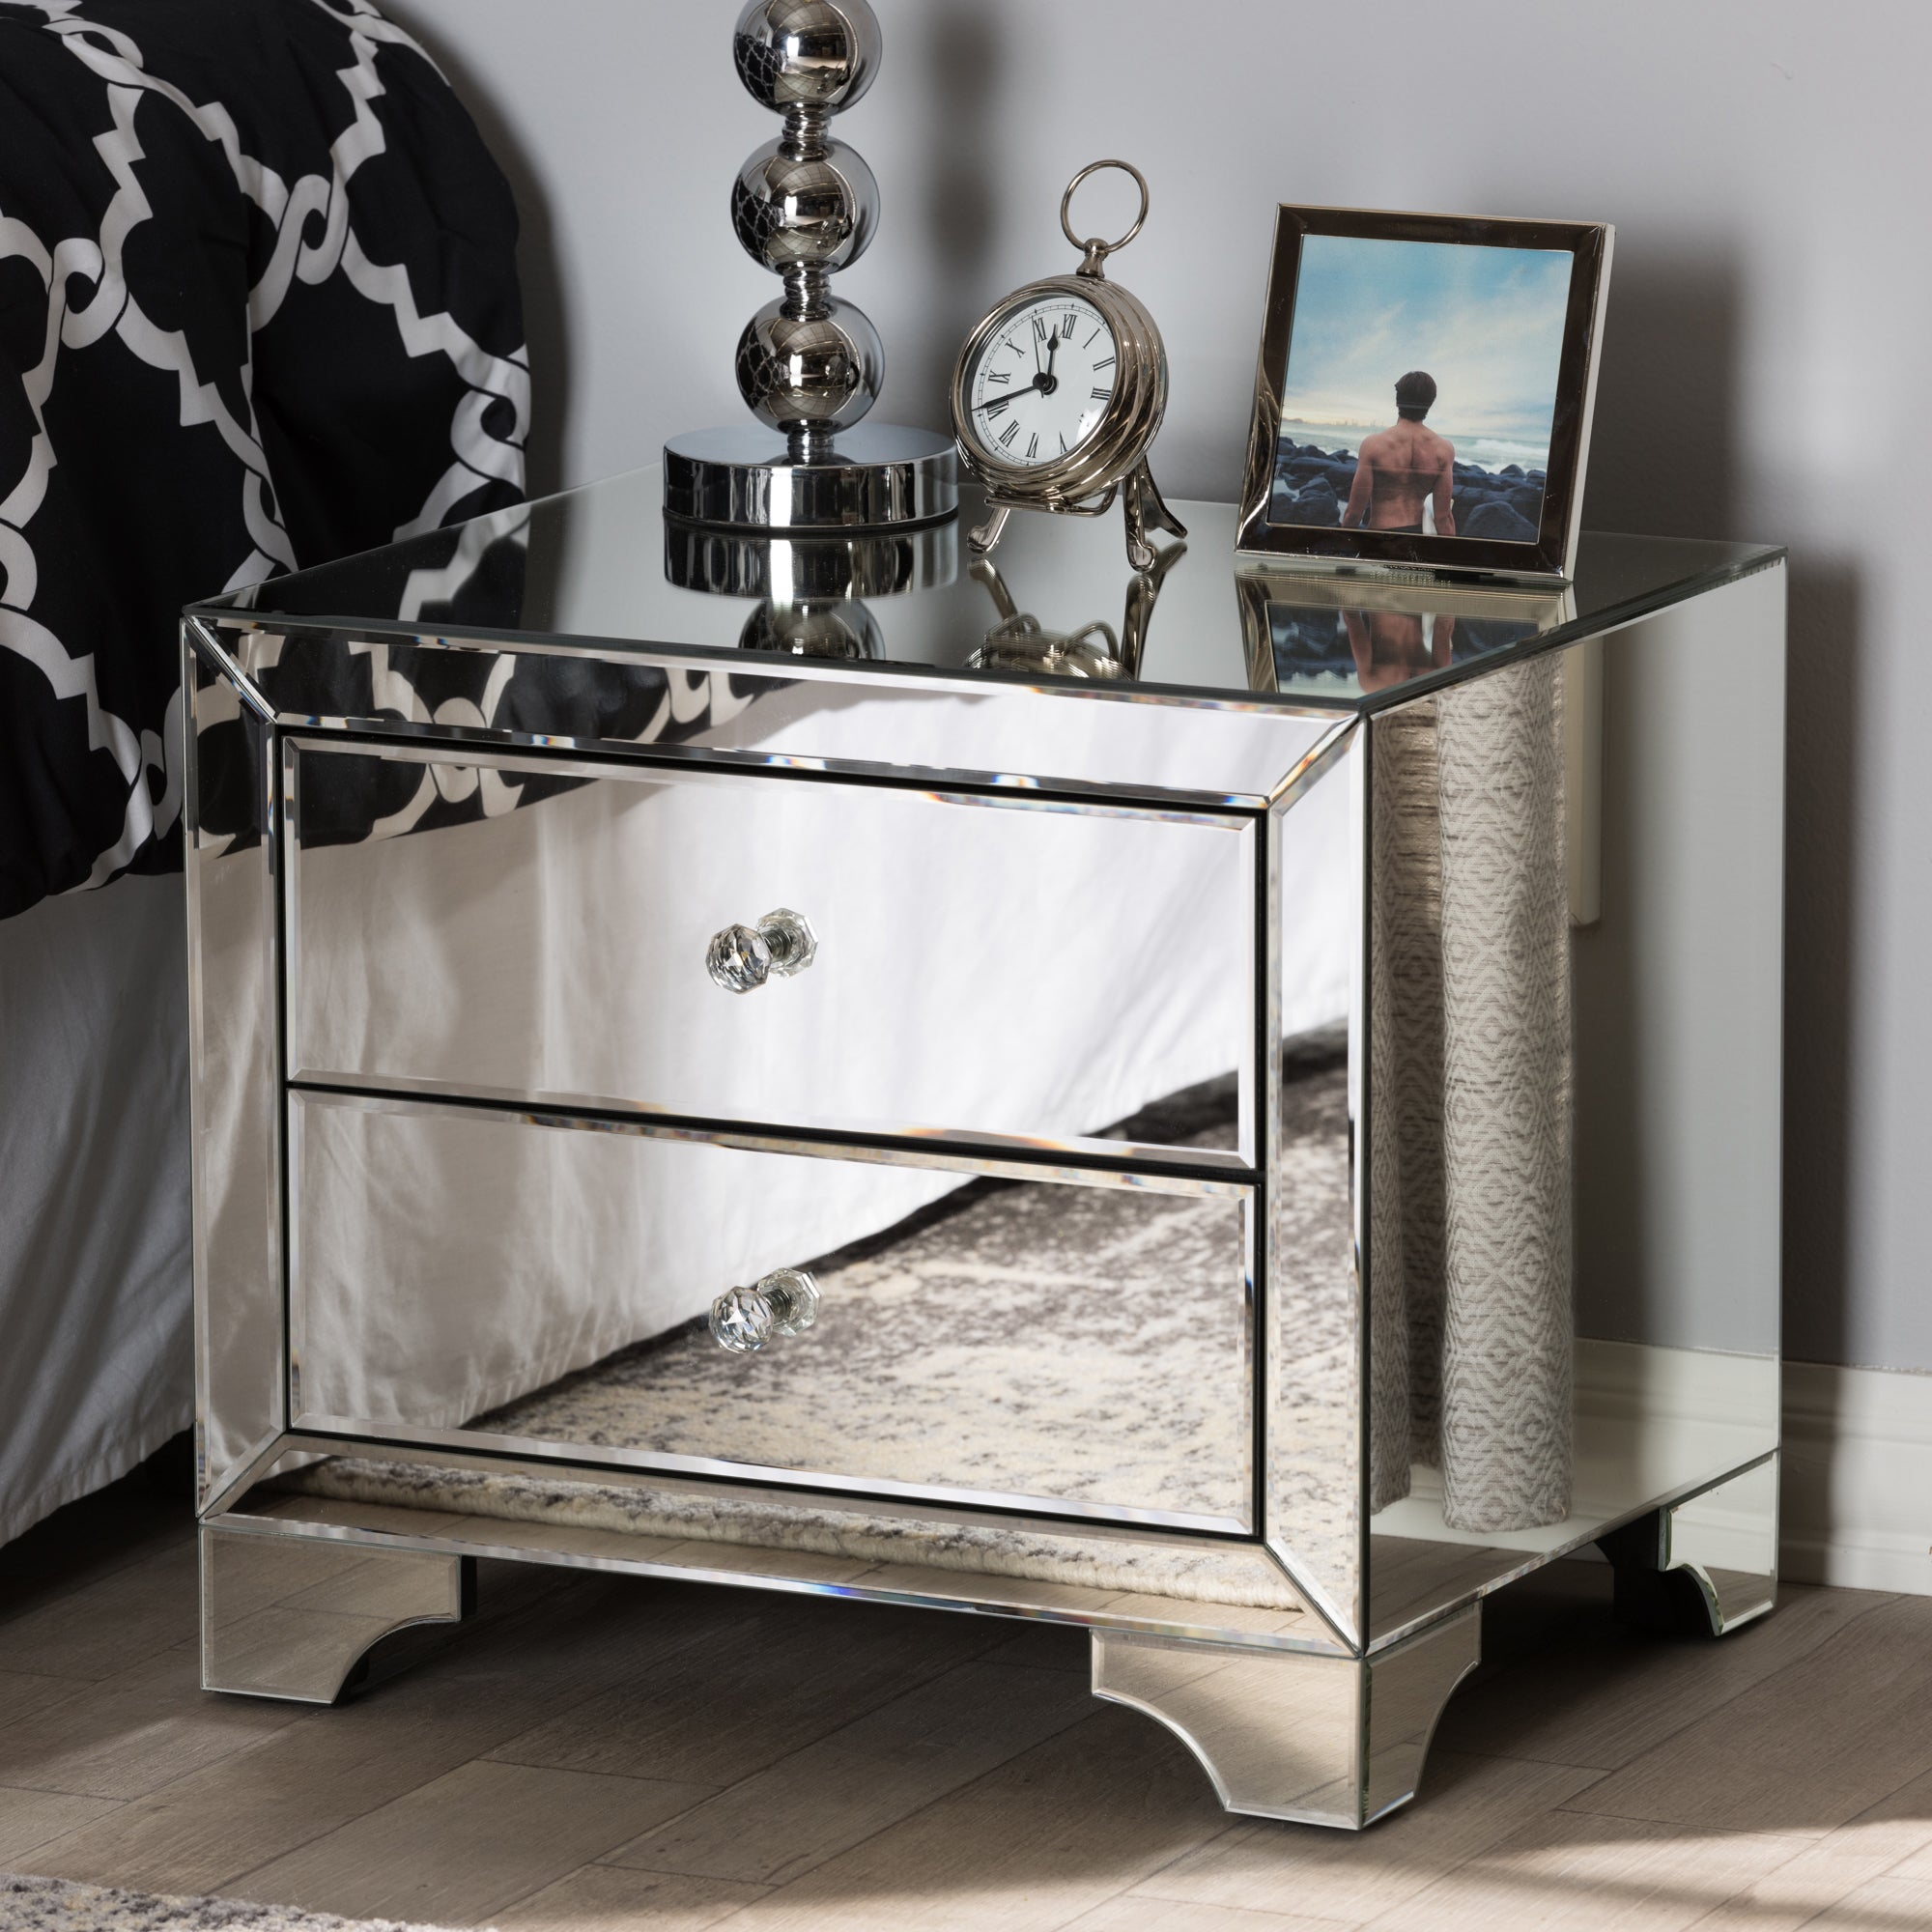 Buy Silver Nightstands Bedside Tables Online At Overstock